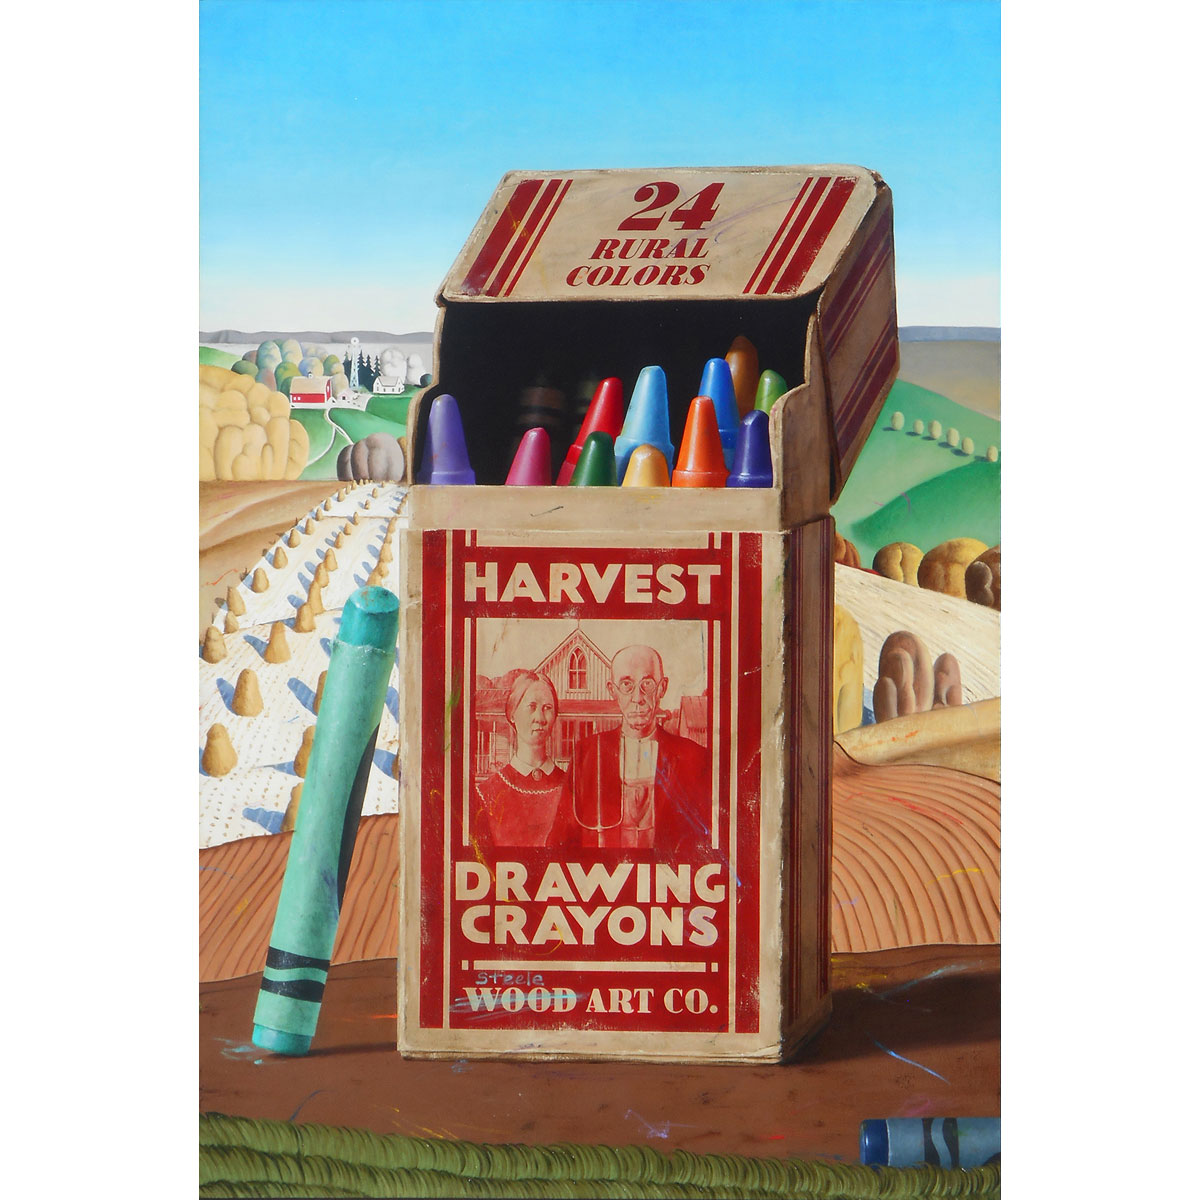 Harvest Crayons by Ben Steele